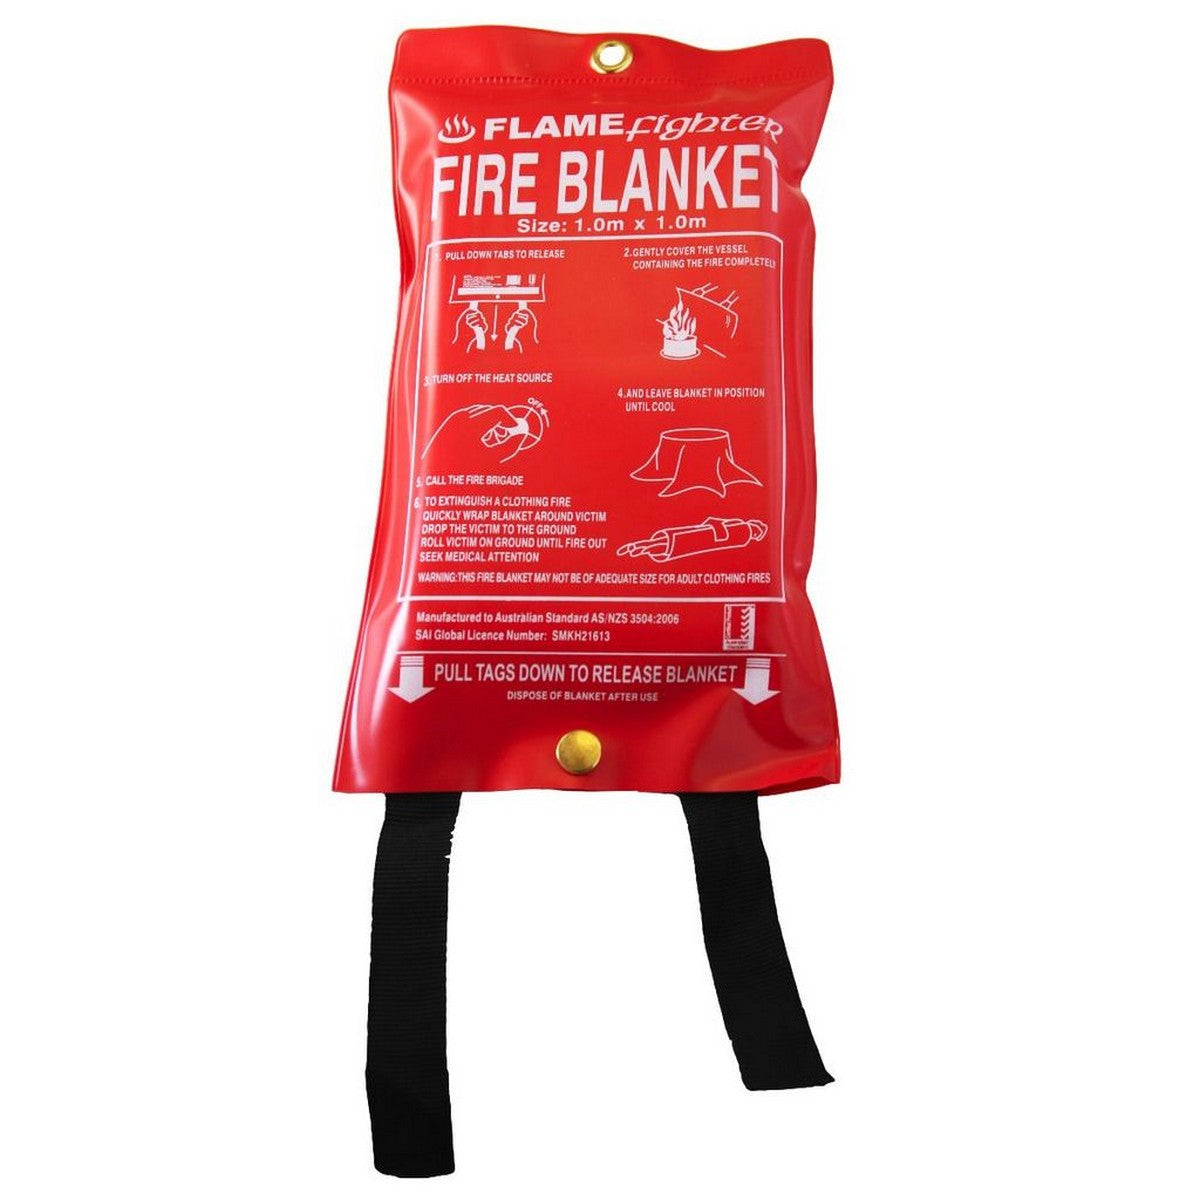 Image of PSL Fire blanket